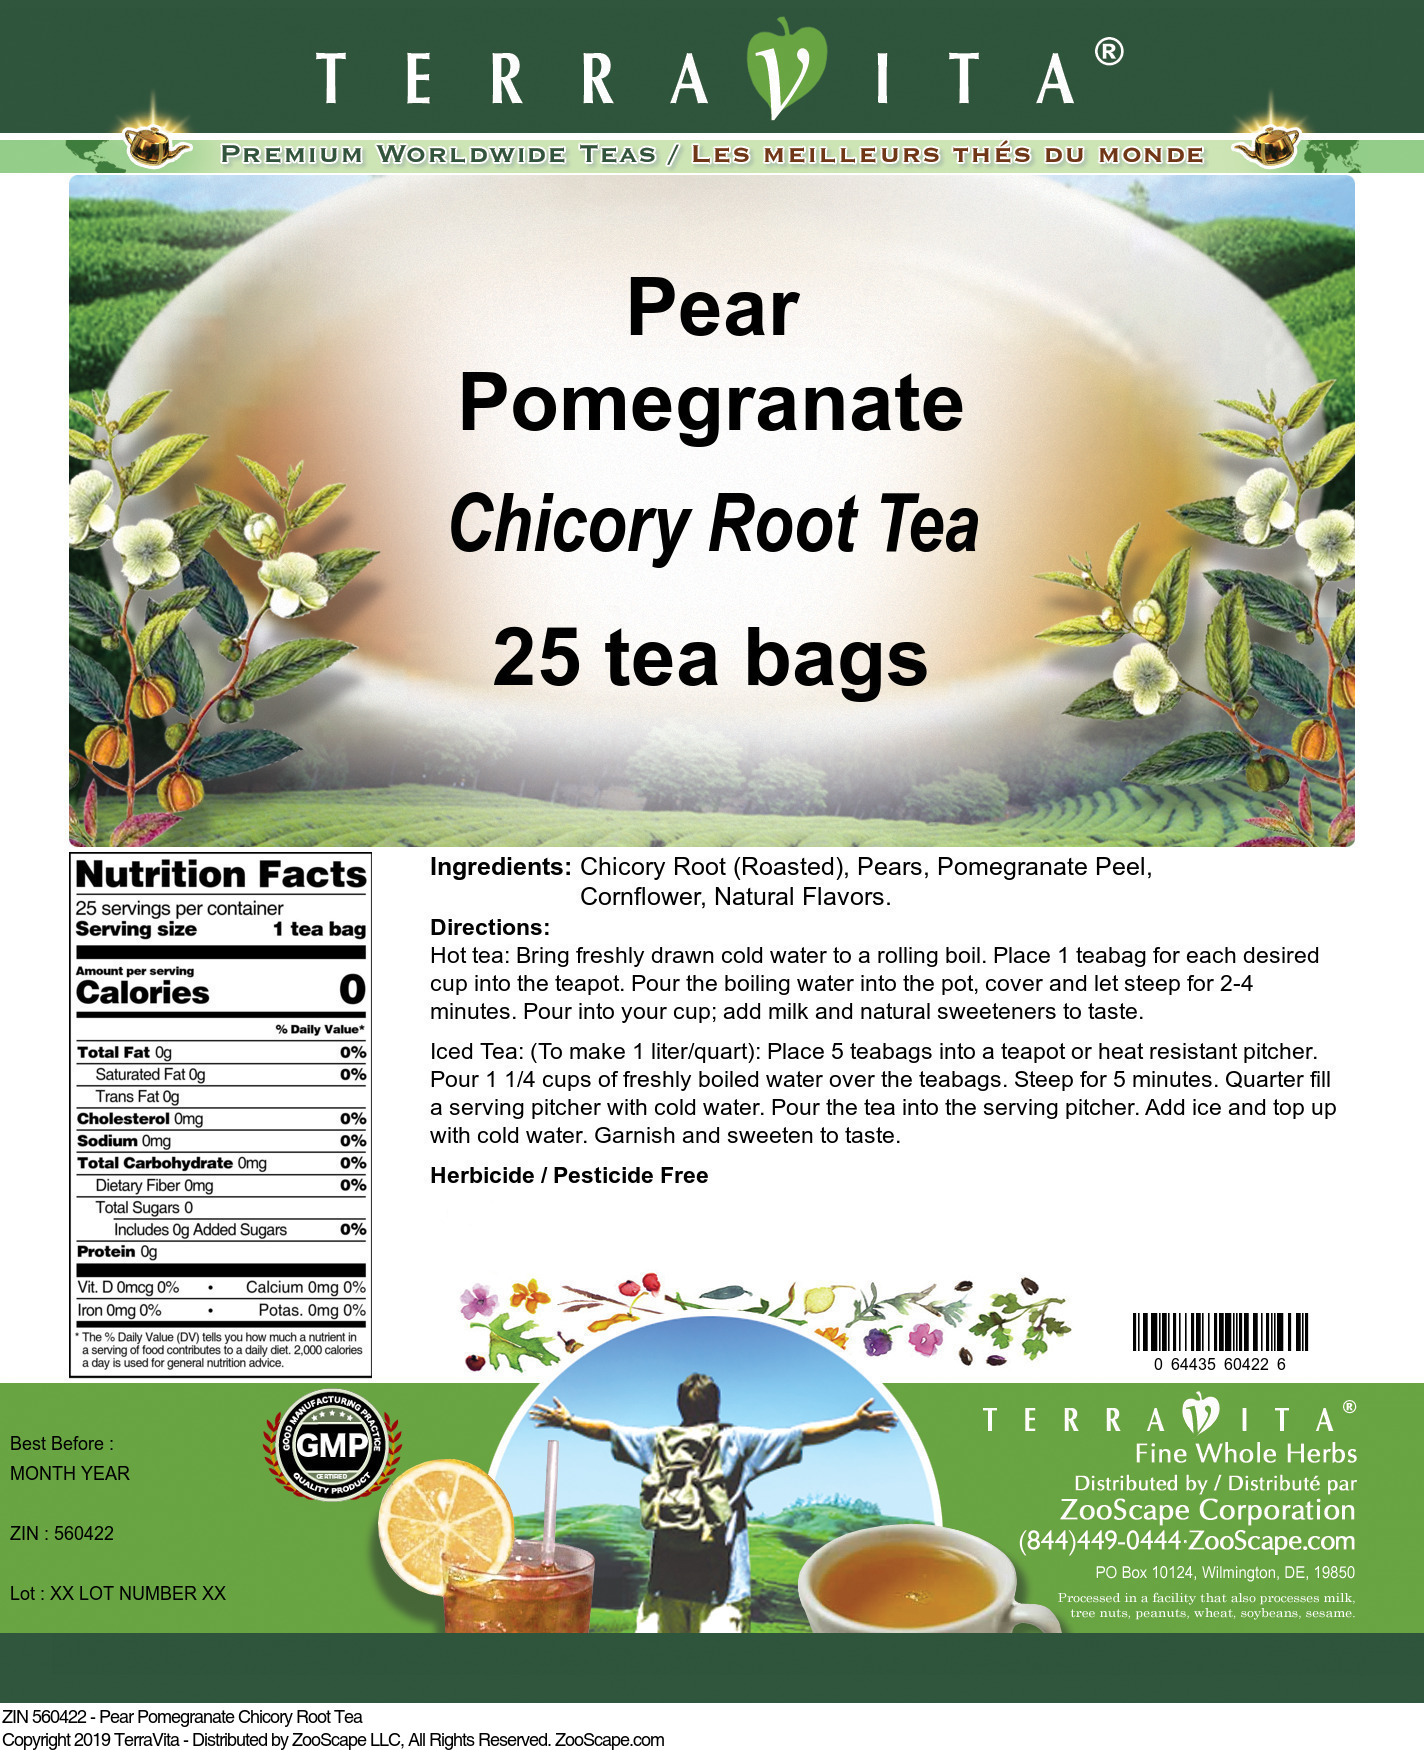 Pear Pomegranate Chicory Root